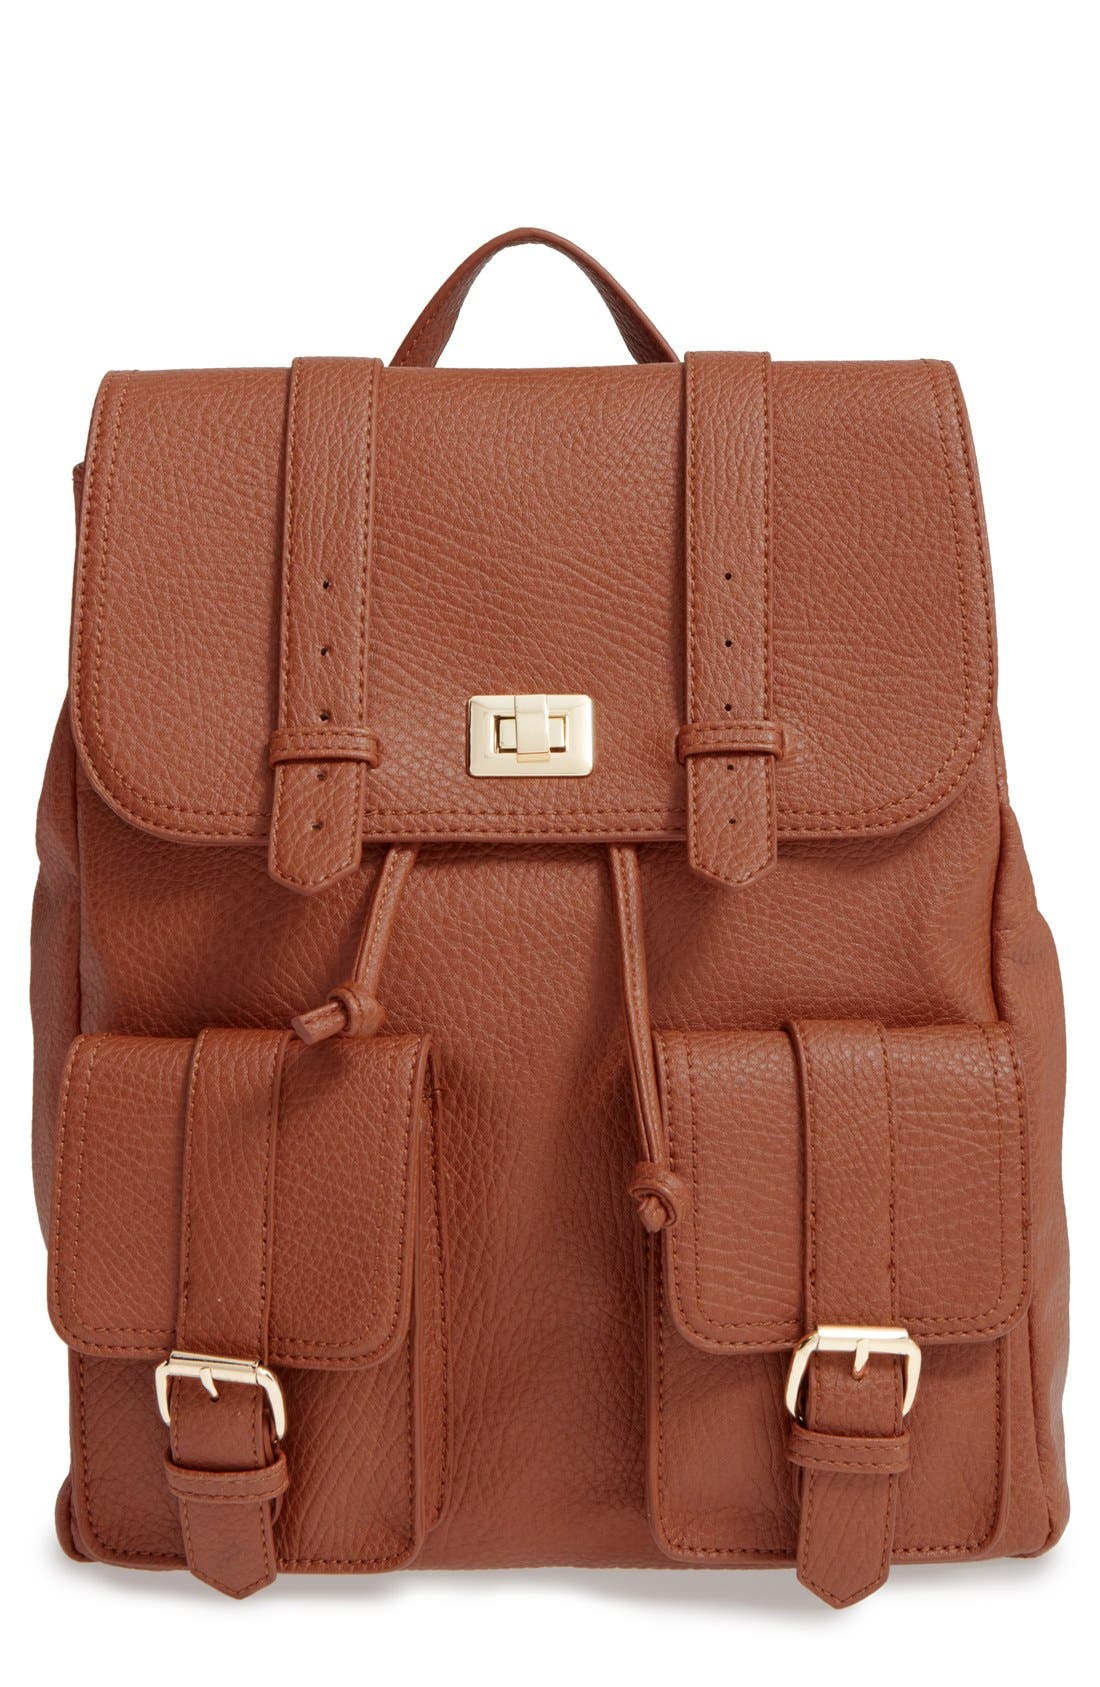 Alternate Image 1 Selected - Sole Society 'Shaw' Faux Leather Backpack